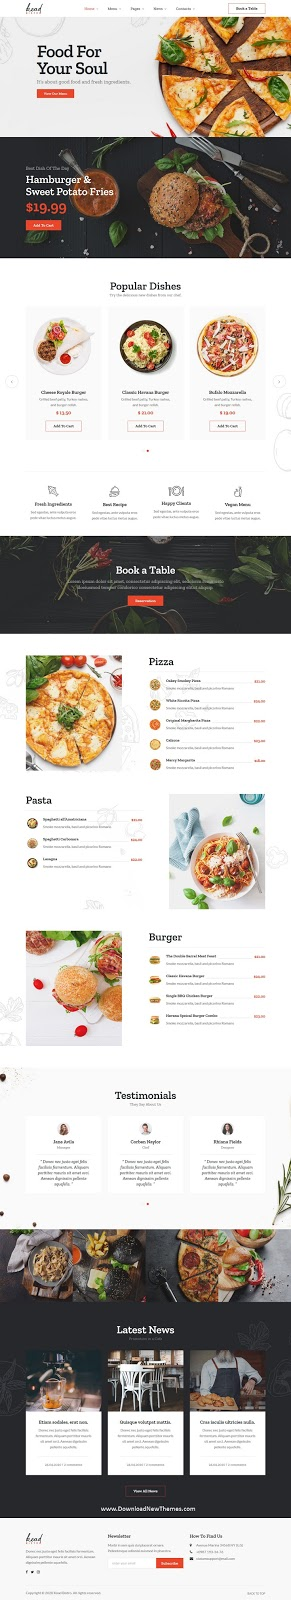 Best Restaurant & Bistro Website Template